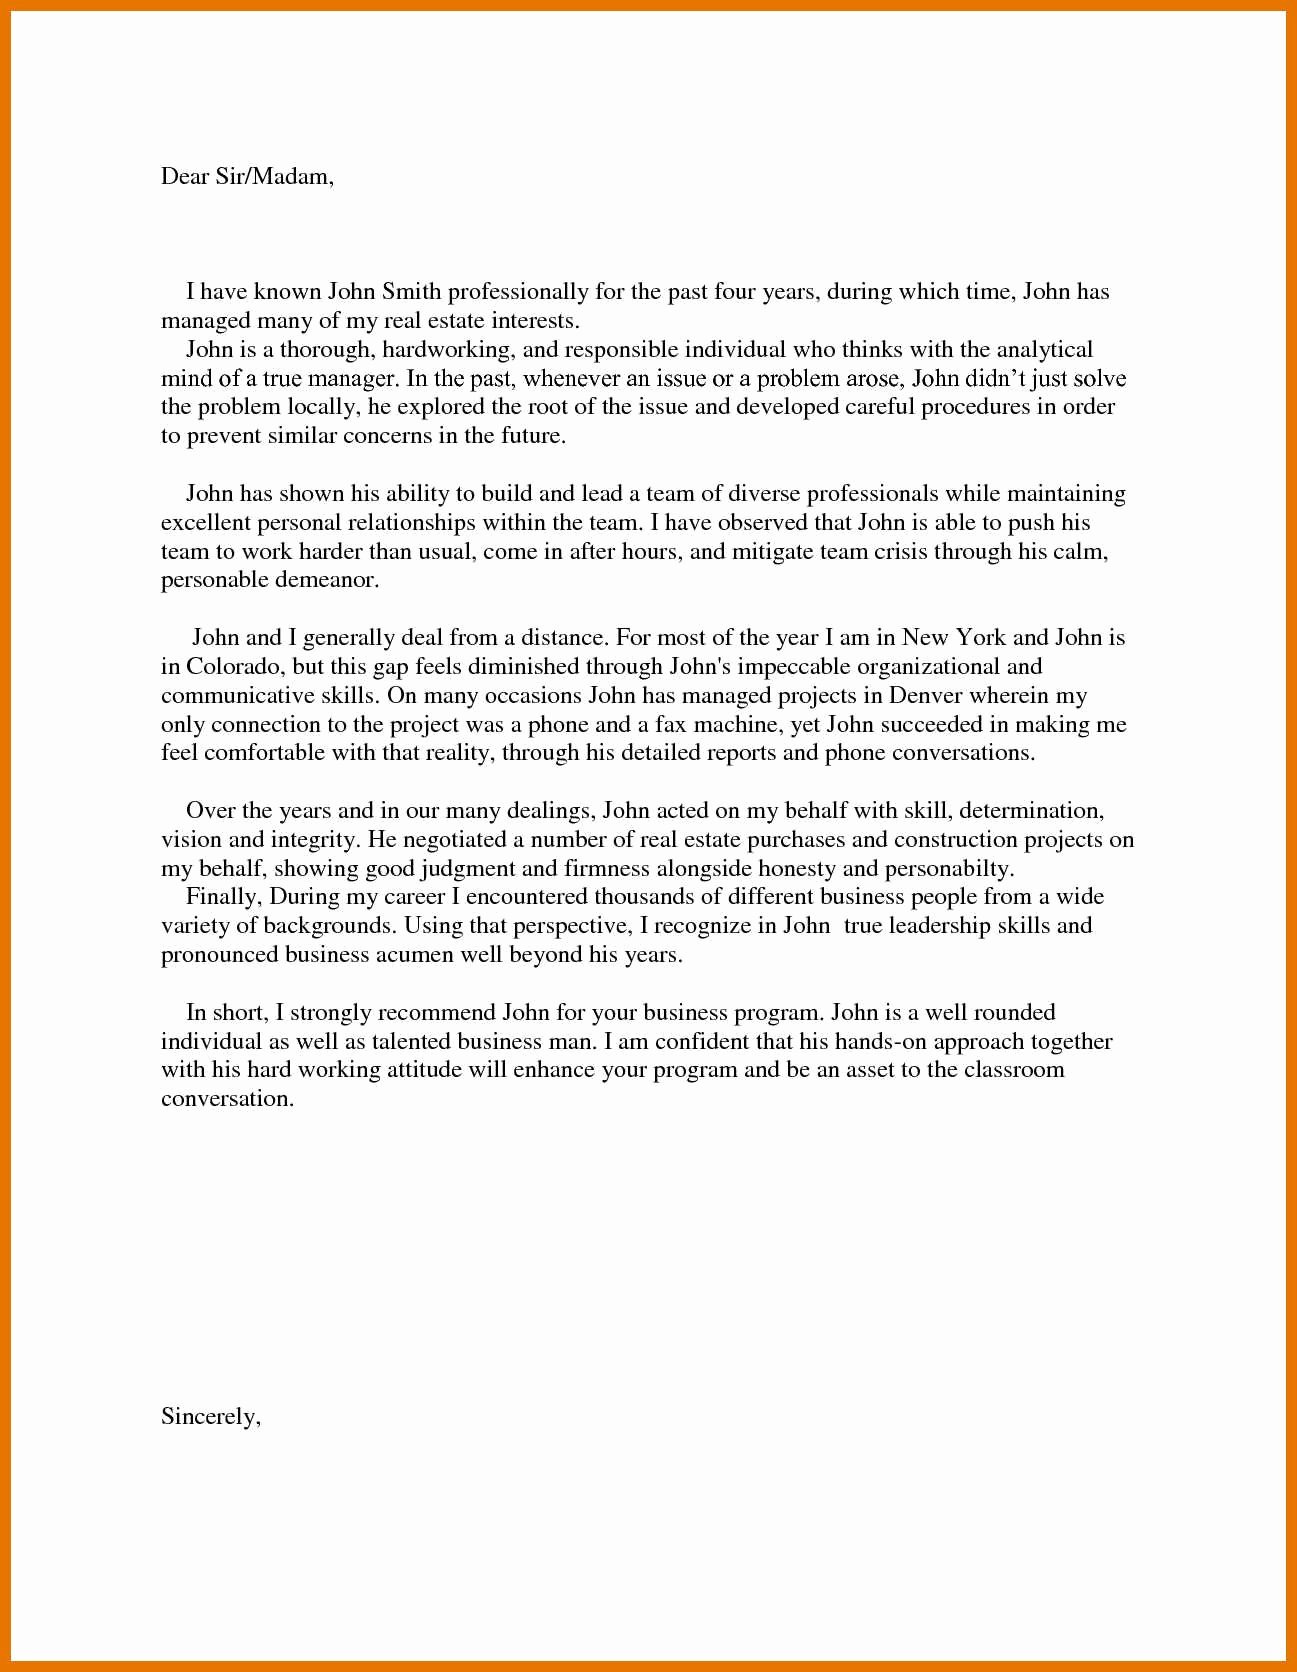 Harvard Mba Recommendation Letter Beautiful Sample Letter Re Mendation Harvard Business School